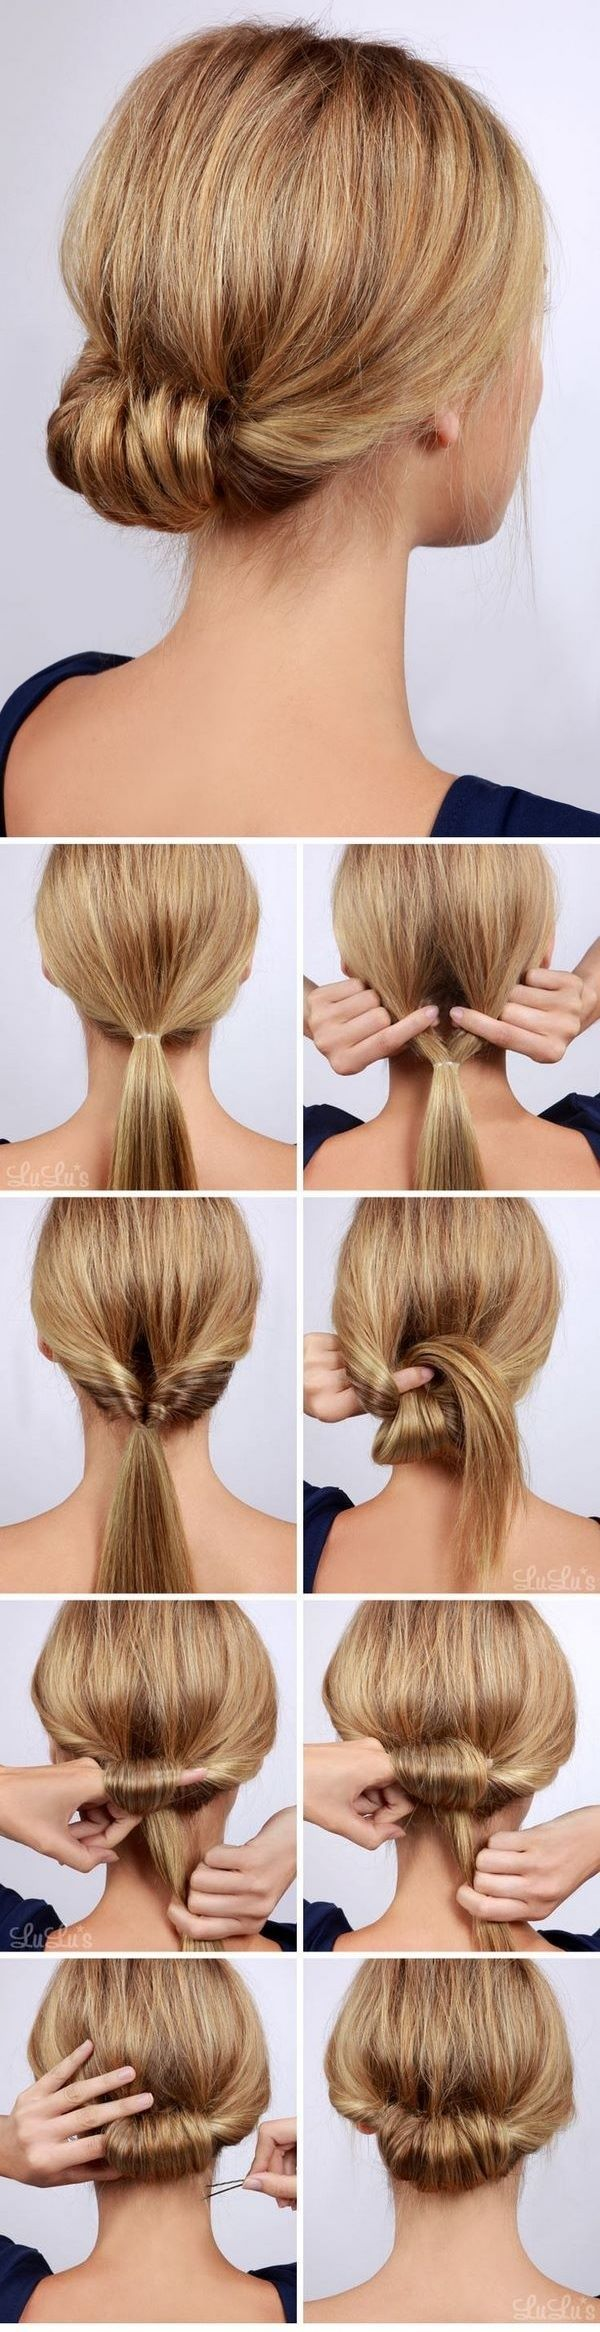 Easy Hairstyles - Peinados Faciles